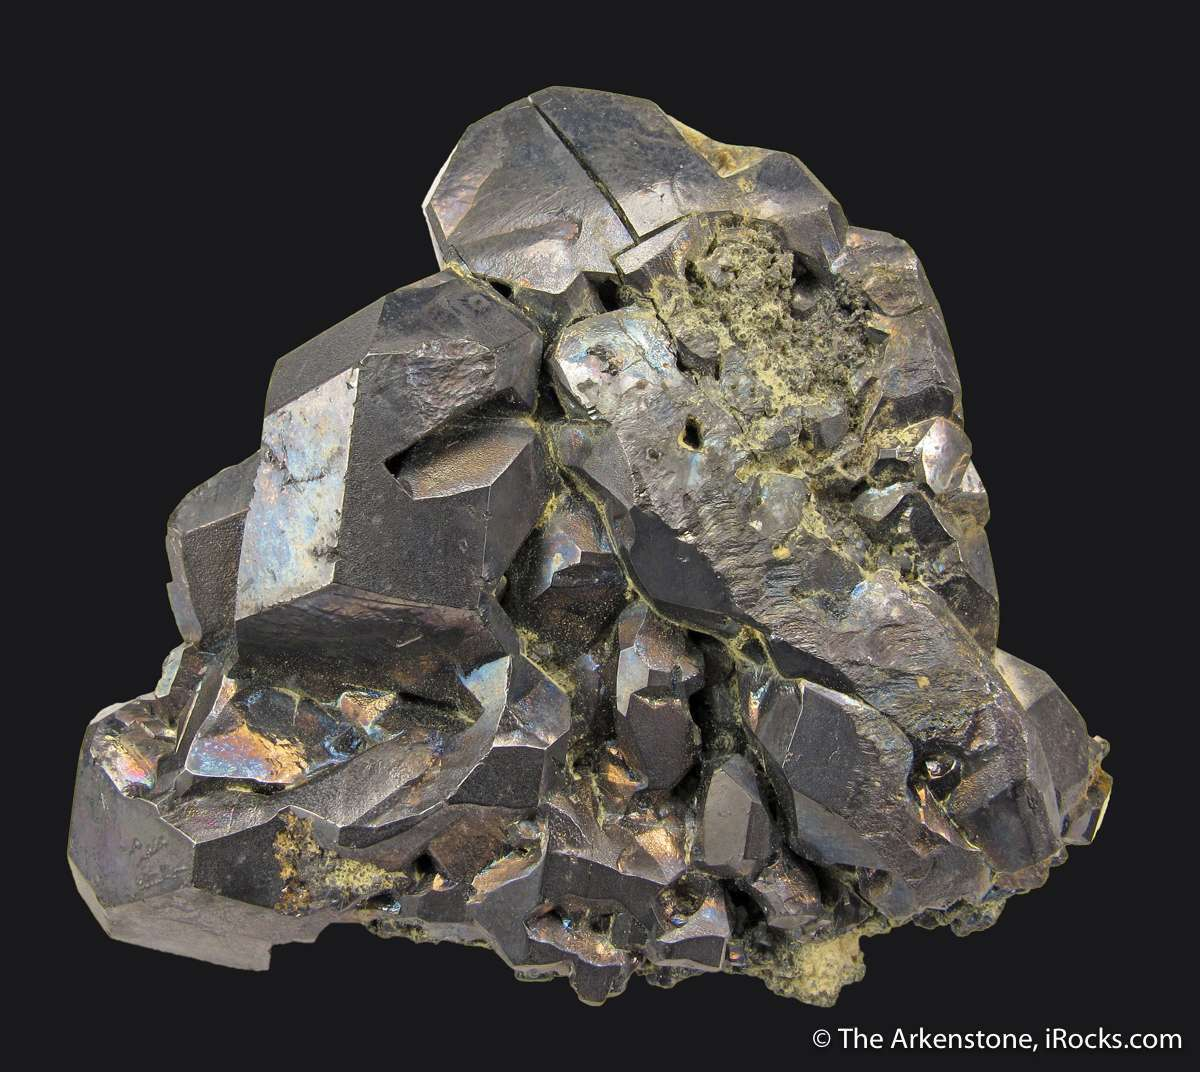 Very fine cluster metallic gray Galena crystals famous Freiberg